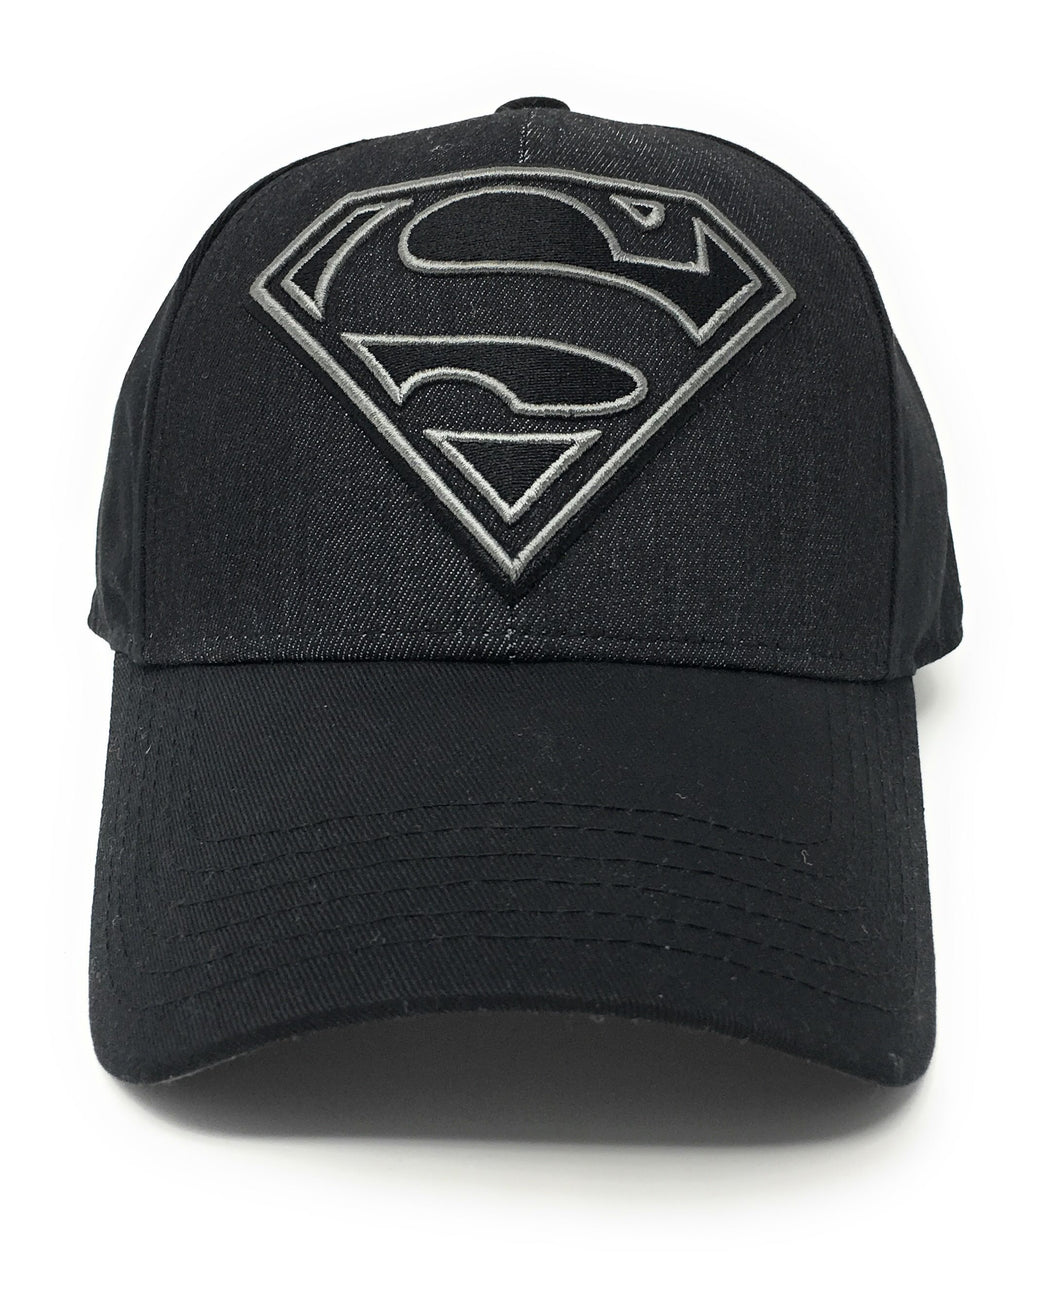 Superman - Black Denim Logo Over Twill Patch Black Snapback